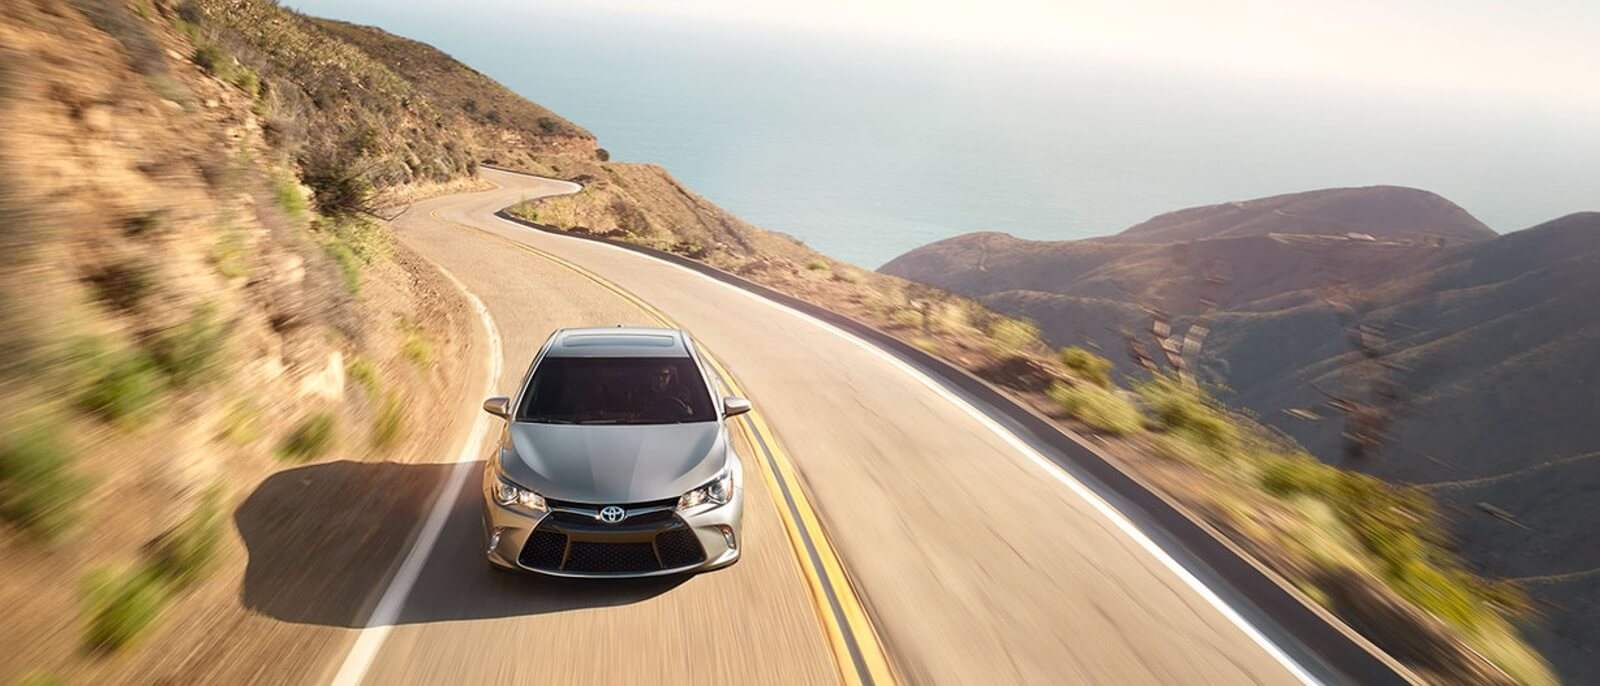 2016 Toyota Camry mountains